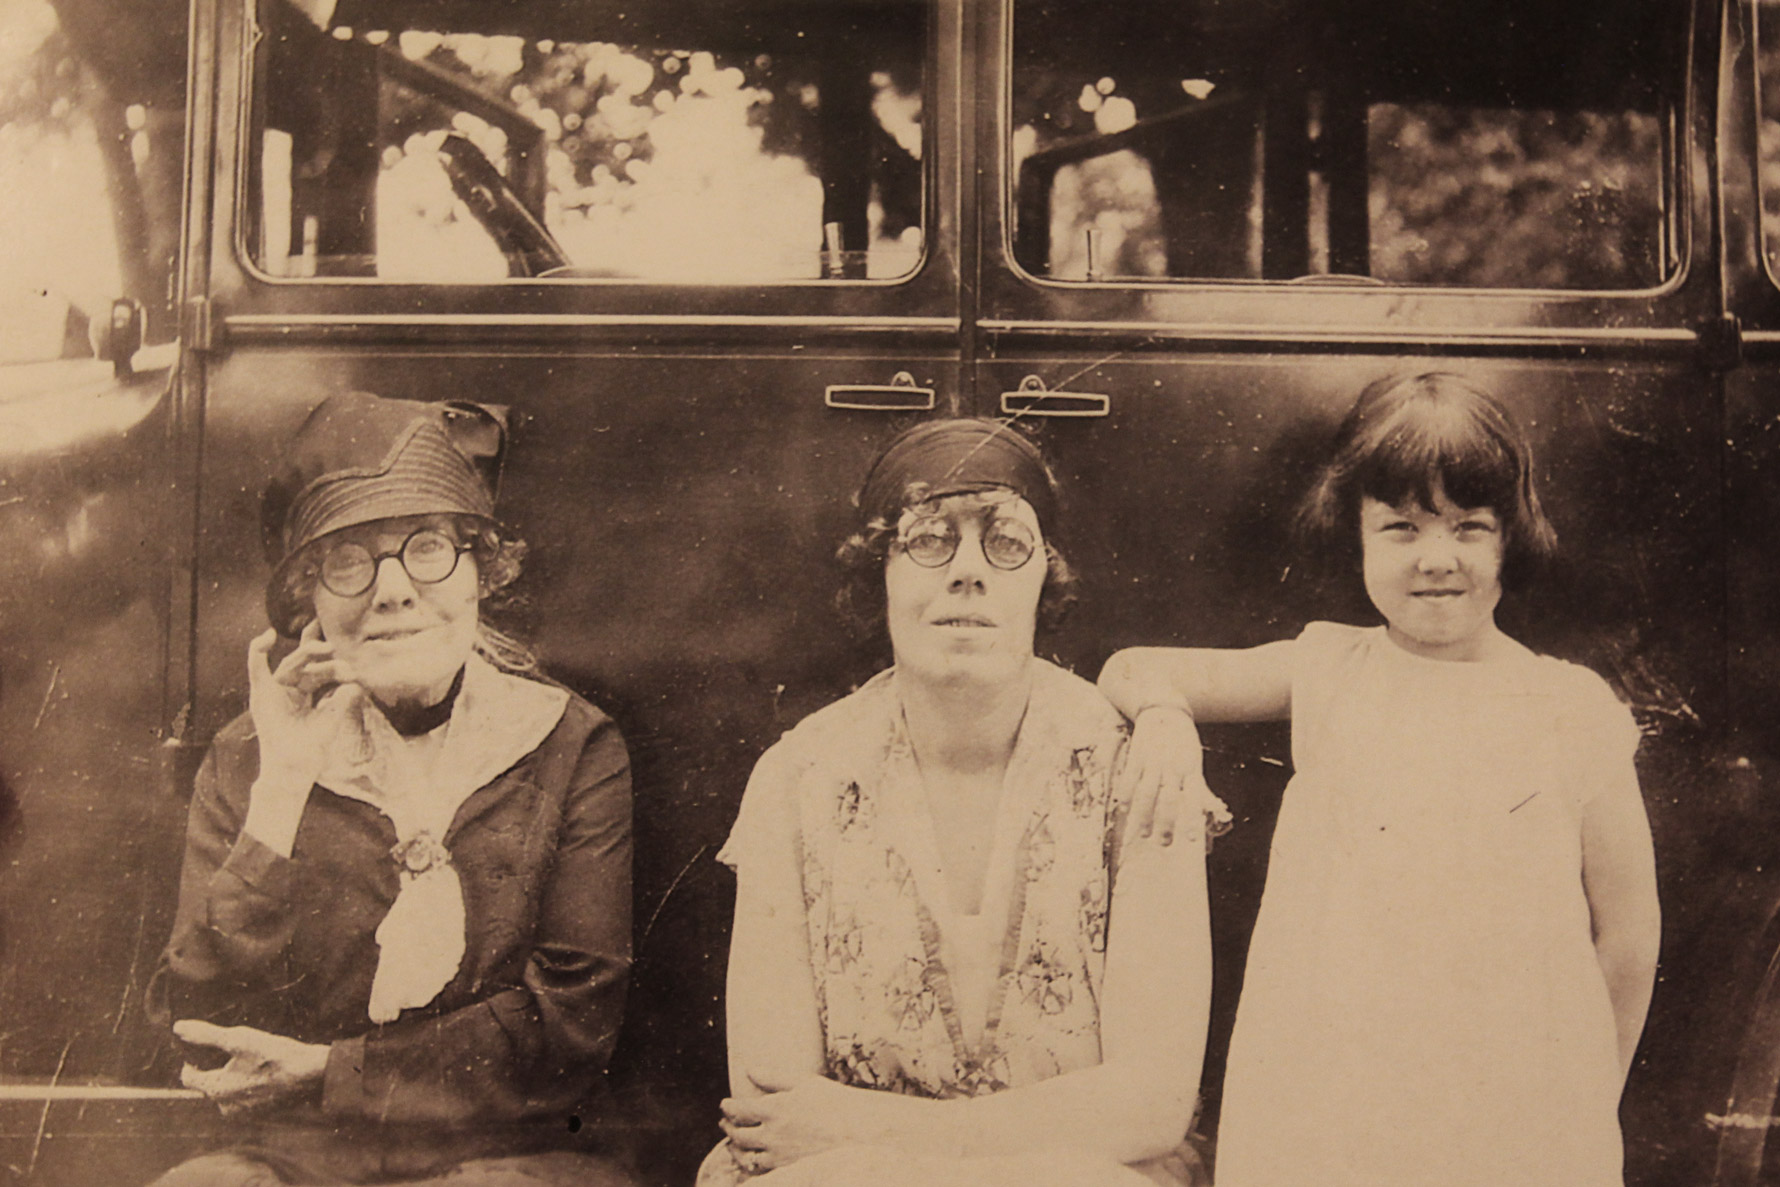 A sepia-toned photograph of three generations of family leaning against a car